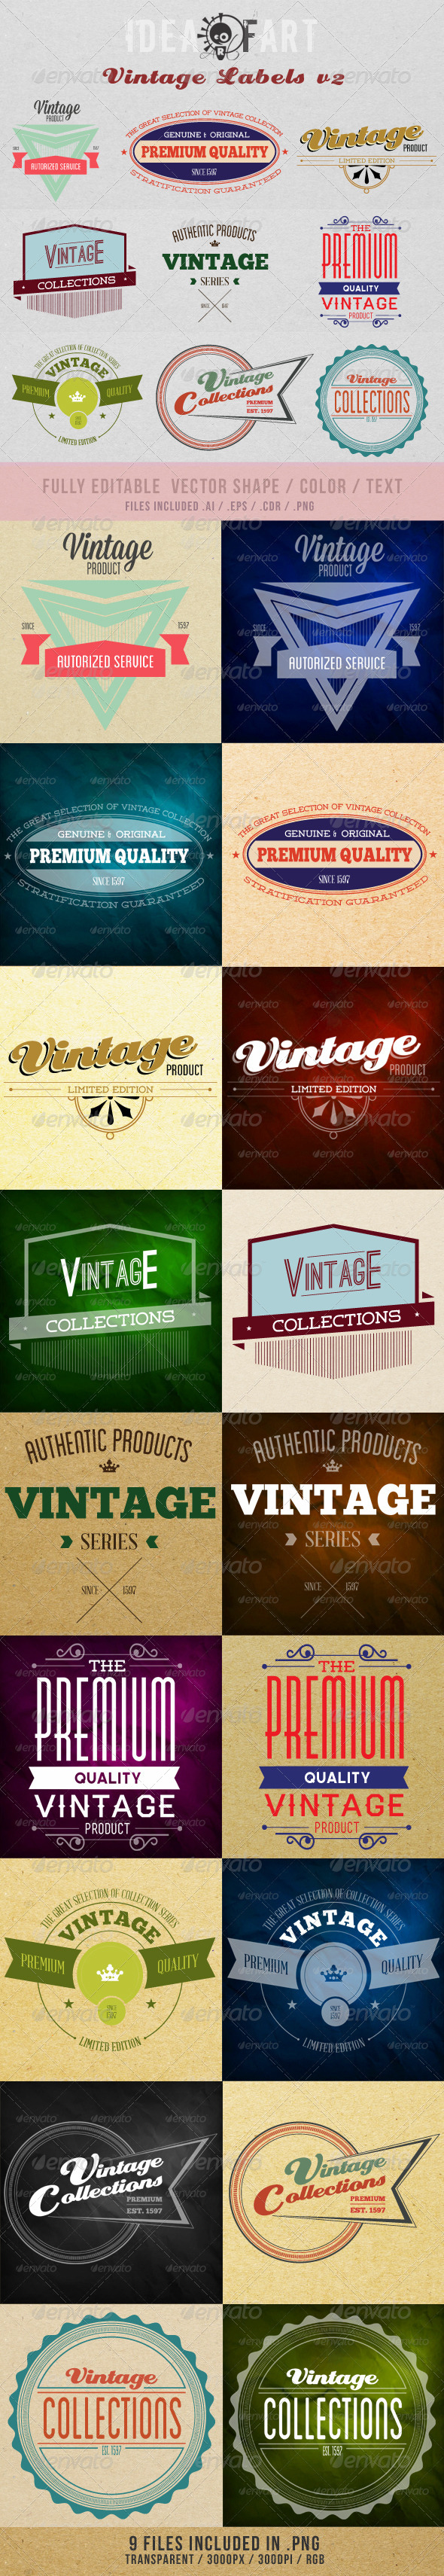 GraphicRiver Vintage Label v2 4176453